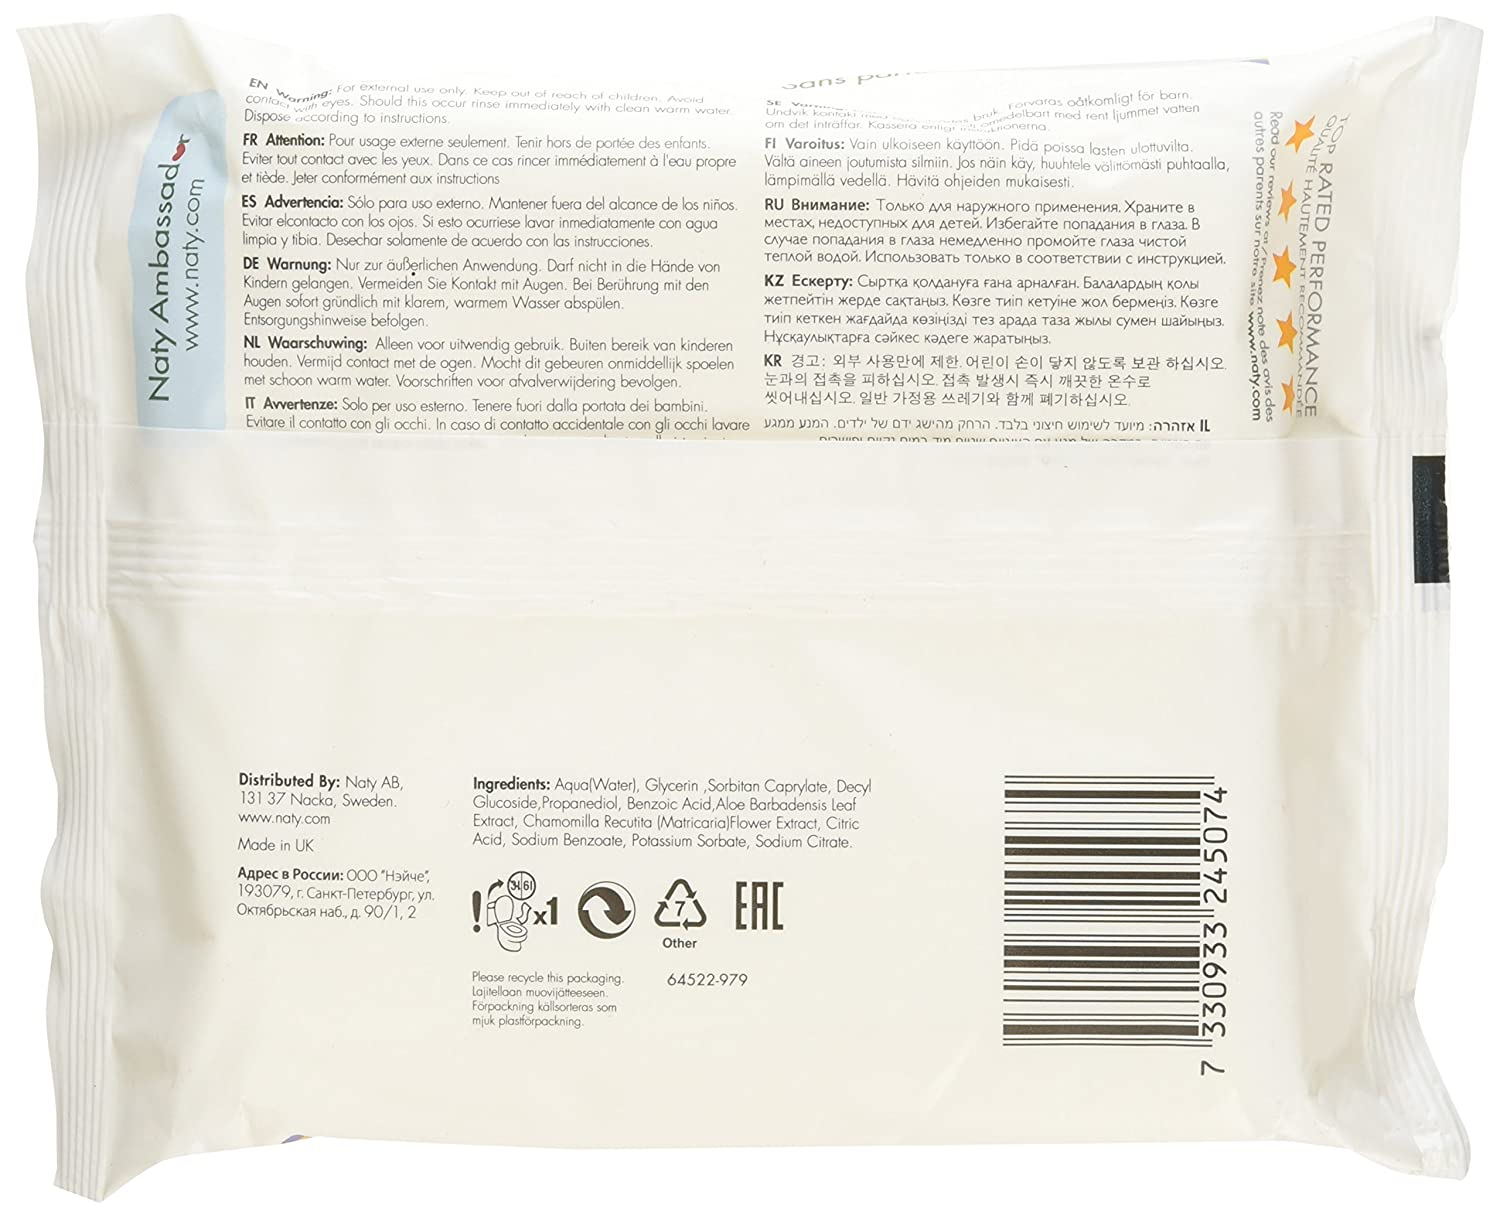 Amazon.com: Naty Eco-Sensitive Toddler Wipes - Resealable Top - 42 ct: Health & Personal Care